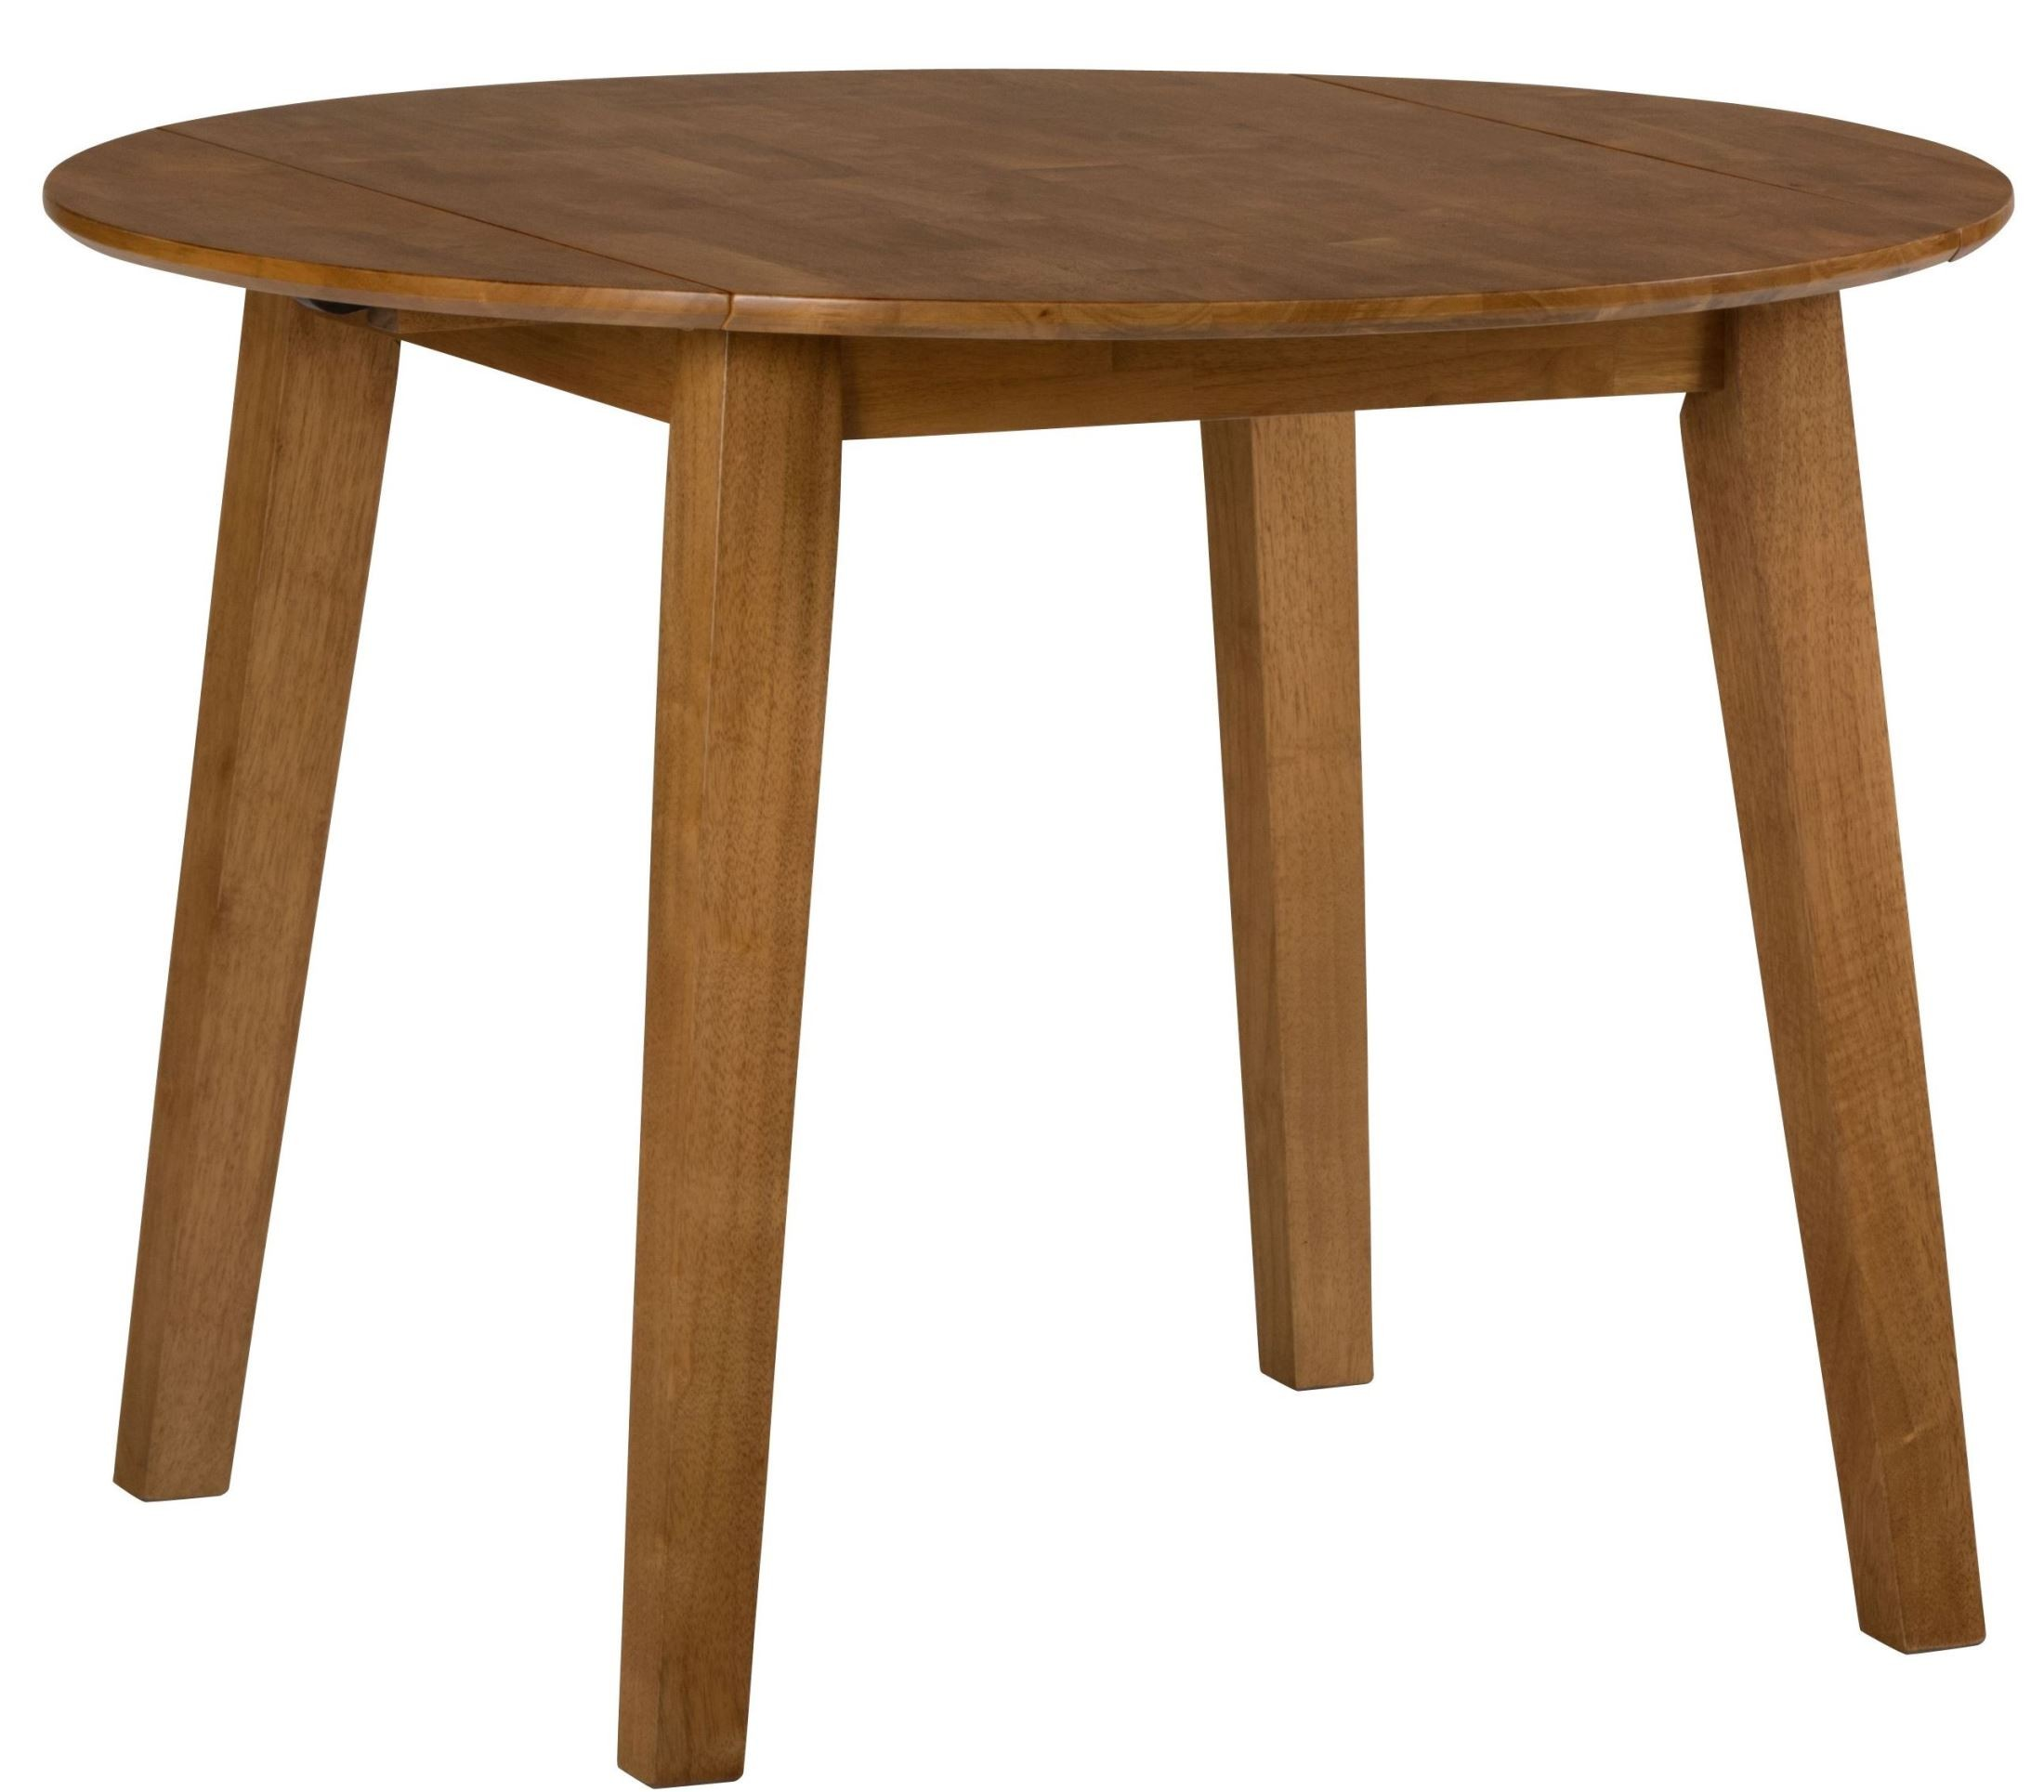 Simplicity honey extendable round drop leaf dining table for Round drop leaf dining table